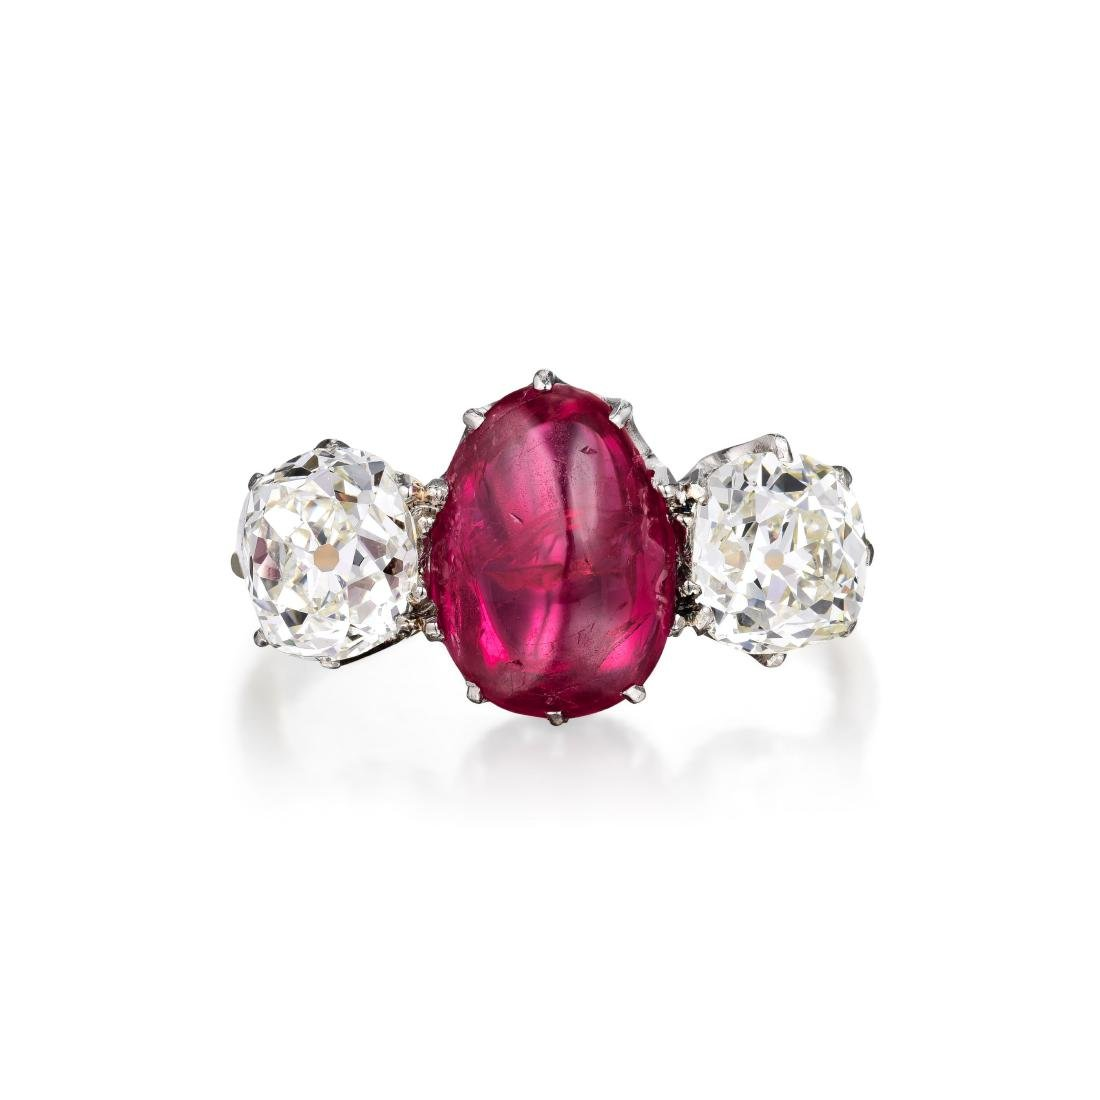 An Antique Burmese Ruby and Diamond Ring